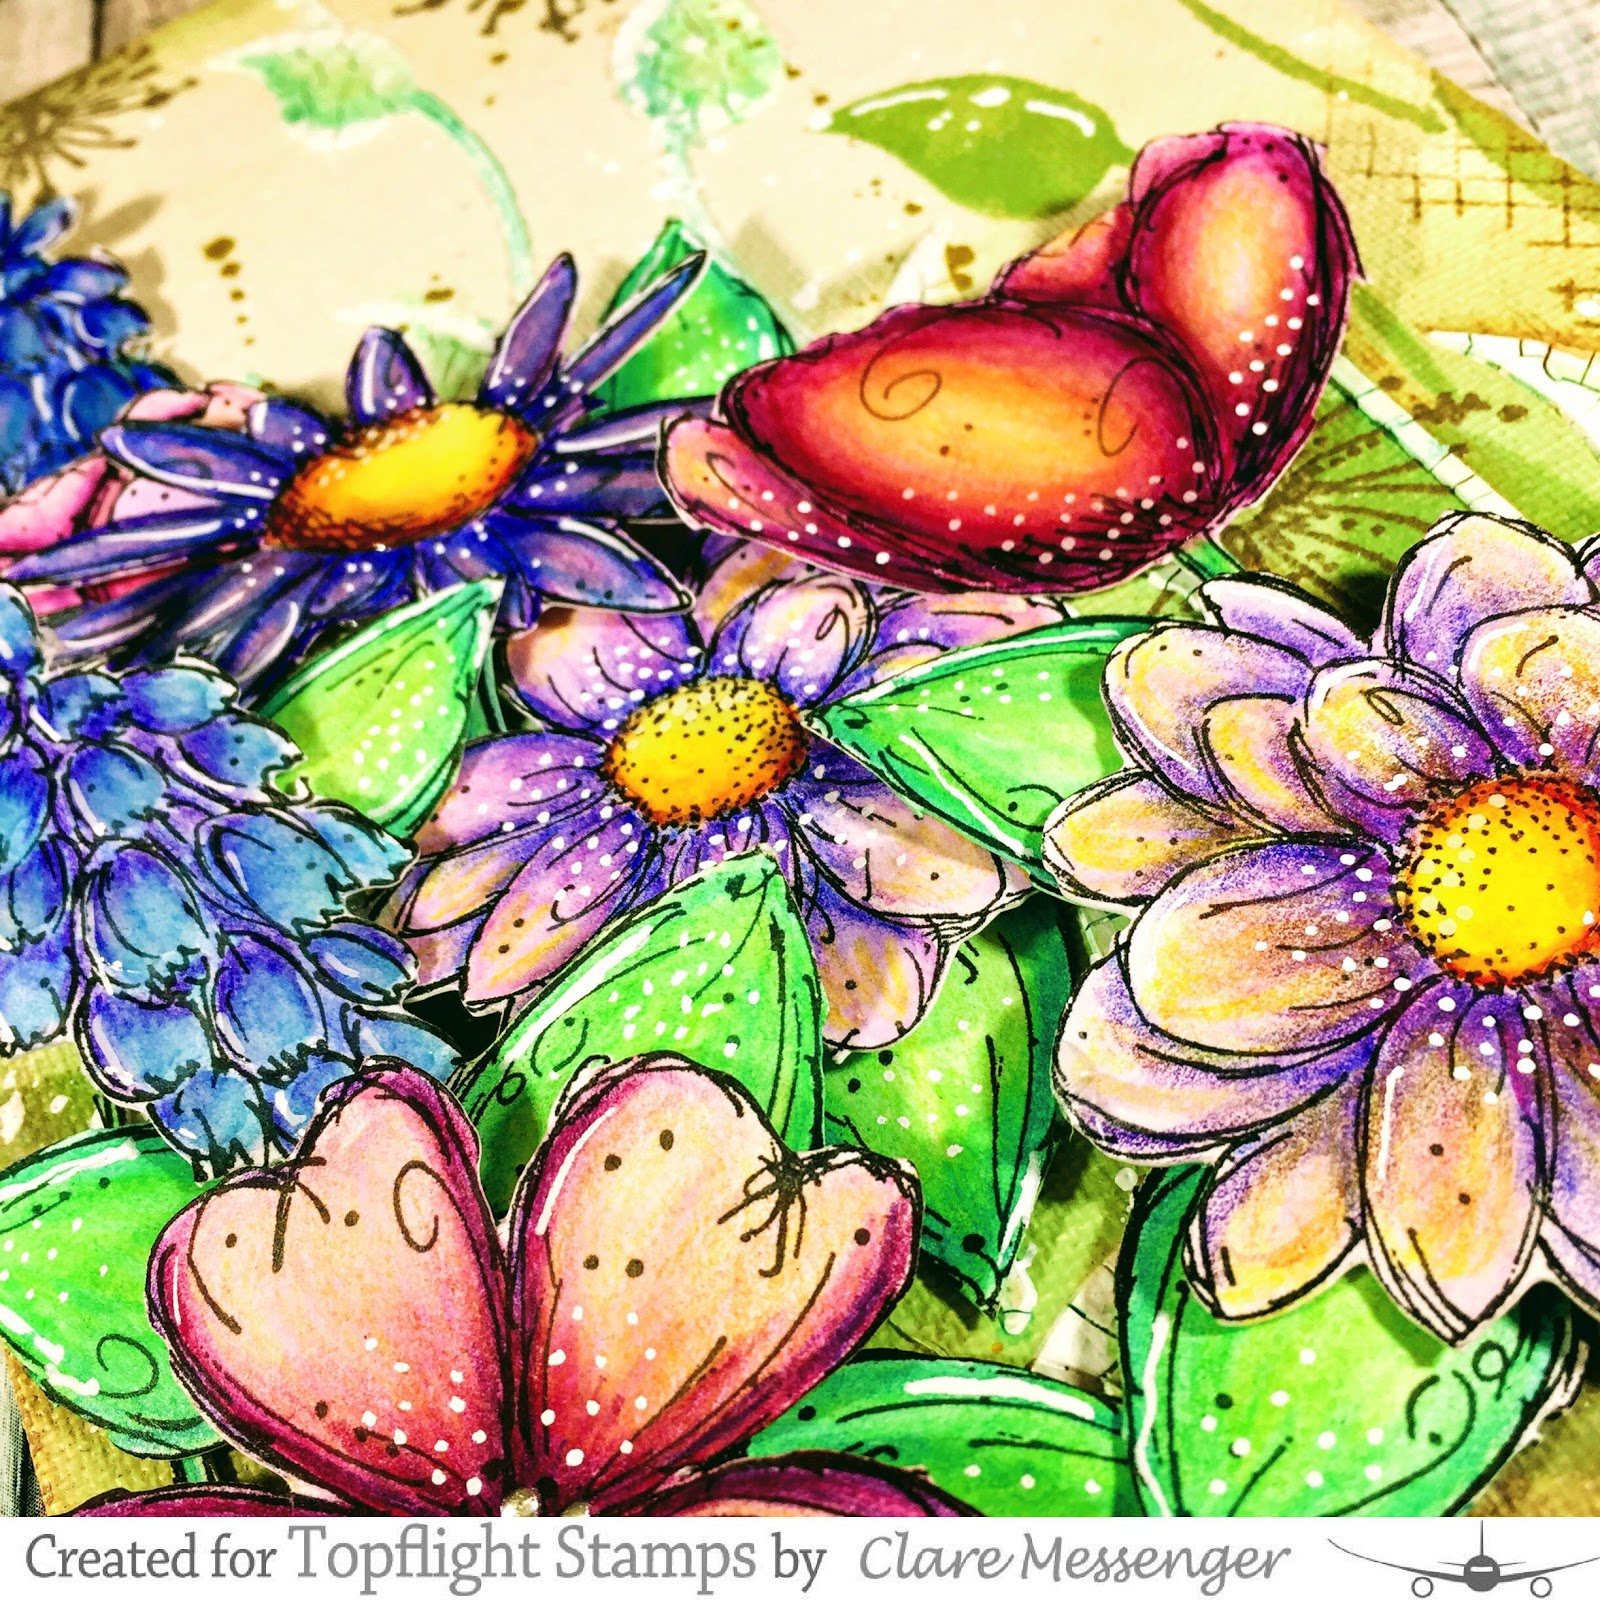 Welcome to the Topflight St&s blog. Itu0027s Clare today this week I have cultivated an A5 canvas using Darkroom Doors u0027Fine Flowersu0027  sc 1 st  Topflight St&s - Blogger & Topflight Stamps: Fine Flowers-Darkroom Door u0026 Paperartsy